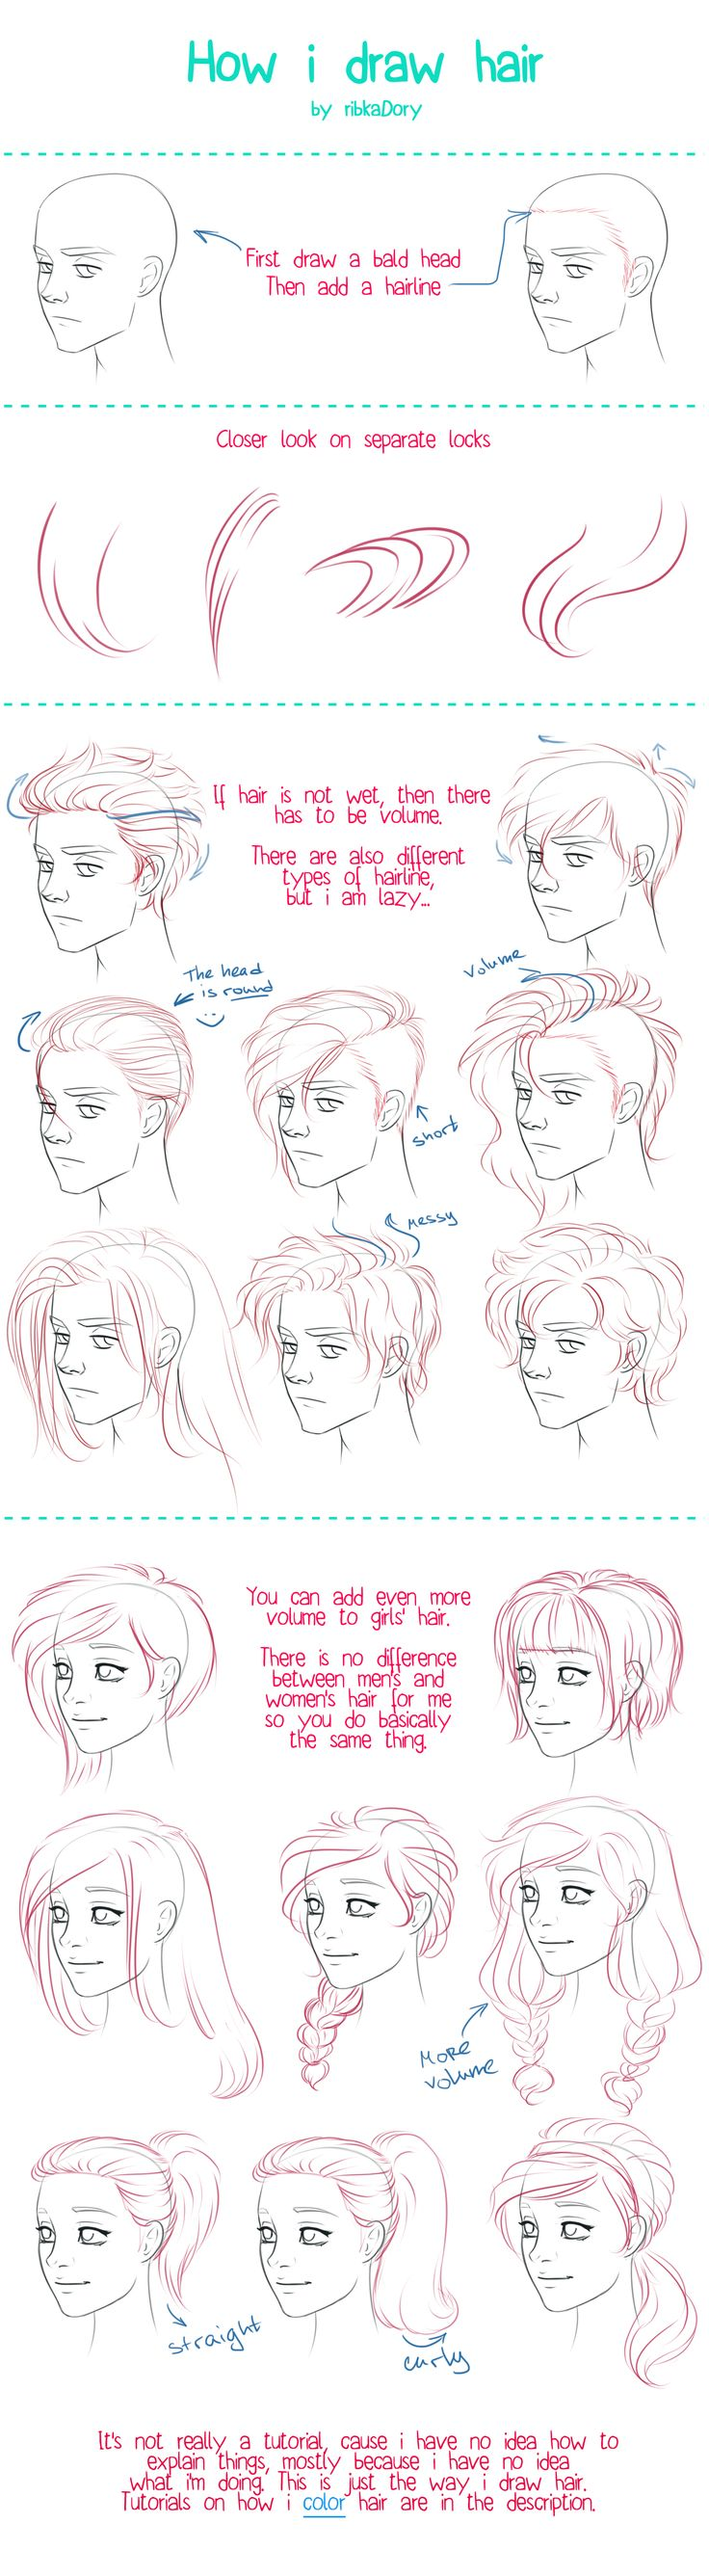 How to Draw Hair tutorial by =ribkaDory on deviantART